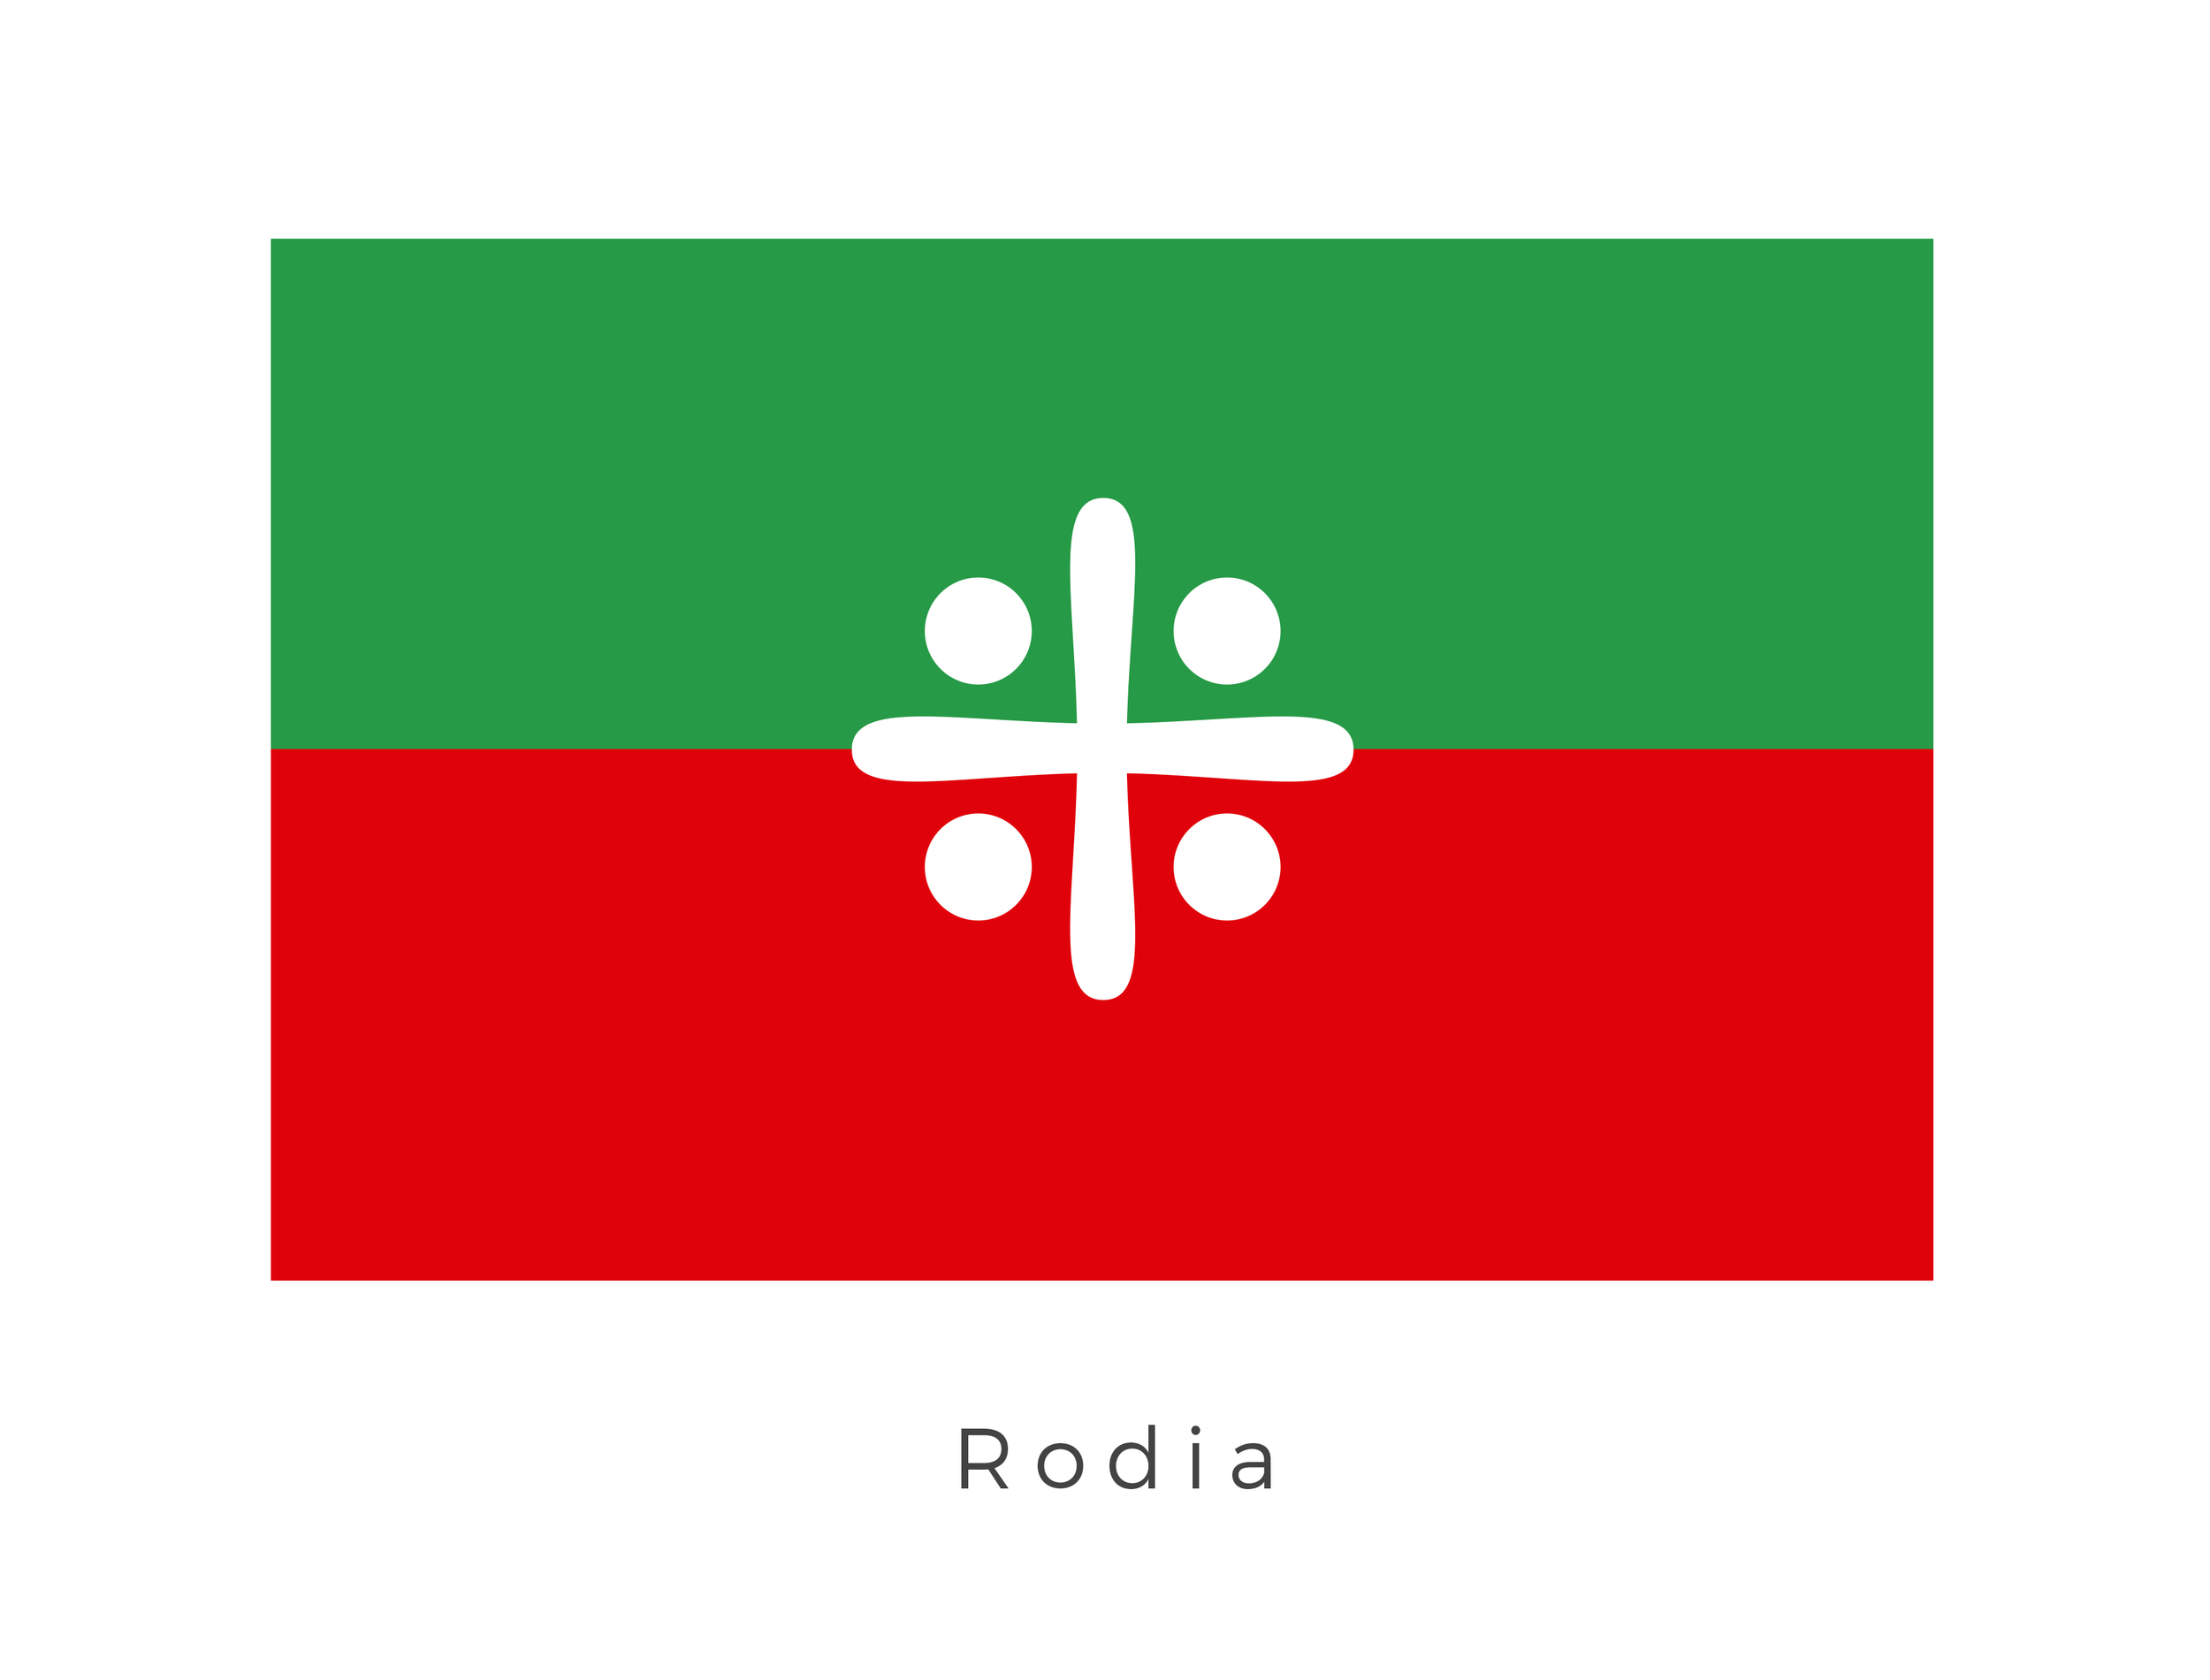 Rodia  was a remote swampy, jungle planet and the homeworld of the Rodians. Cities on Rodia were encased with domed environmental shields that allowed entry and exit for vehicles and vessels. The red and green bands represent these environmental domes which protect the population from the atmosphere while the white icon is that of the The Grand Protector. The Grand Protector being the leader of Rodia and the Rodian race.